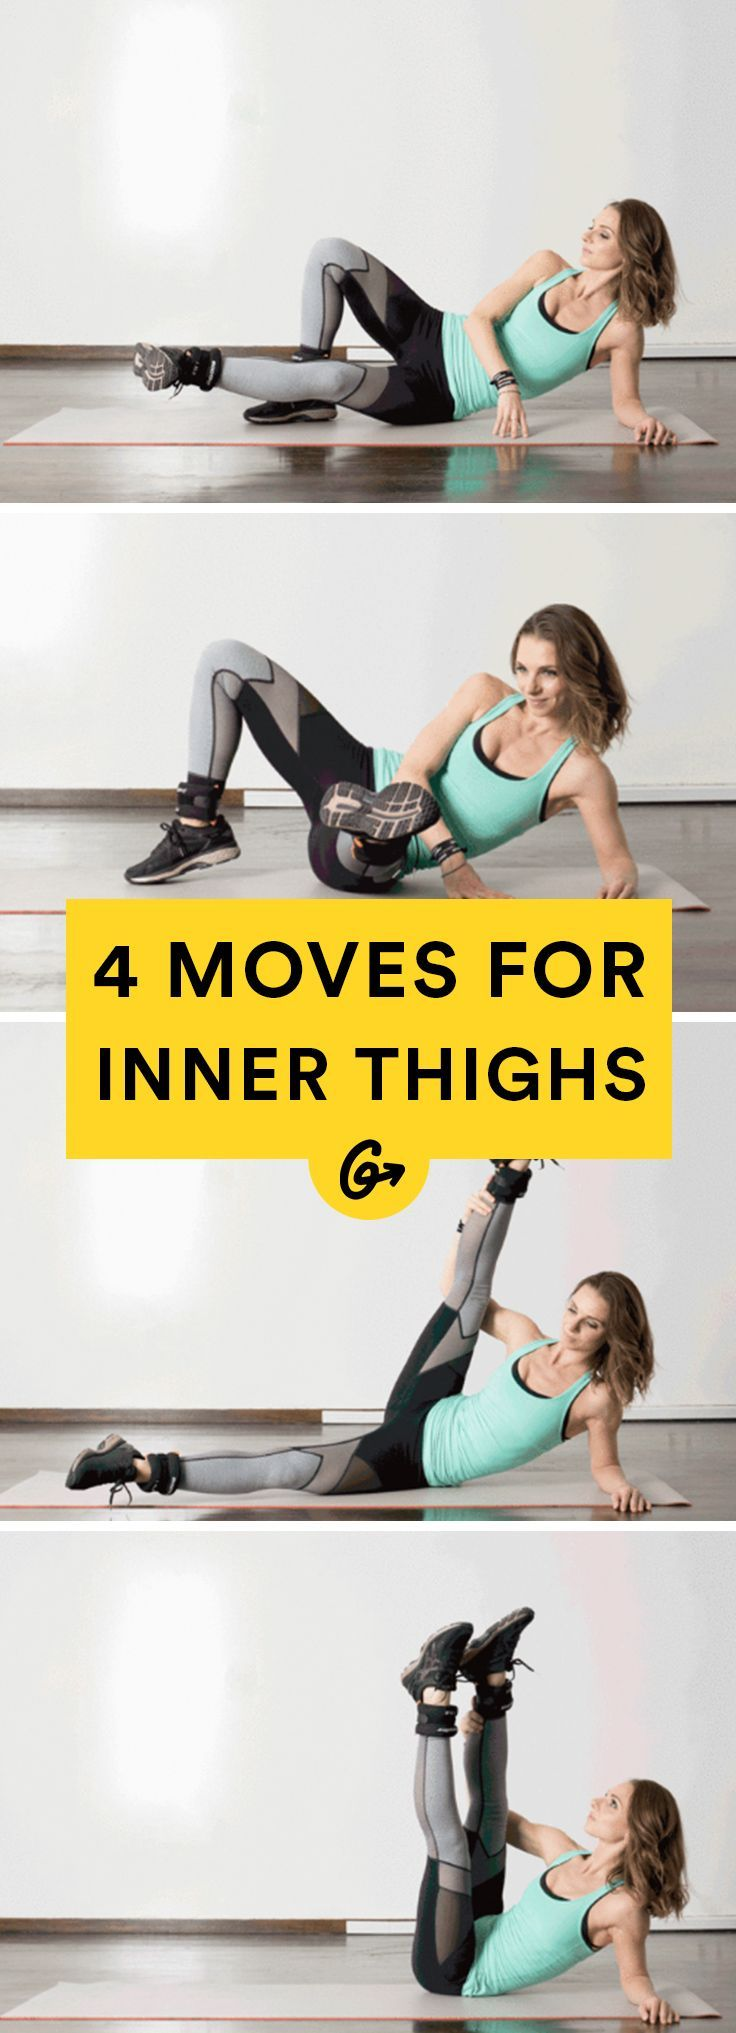 Target your legs from every angle with these creative moves. #leg #thigh #workout http://greatist.com/move/leg-workout-the-best-moves-for-inner-and-outer-thighs